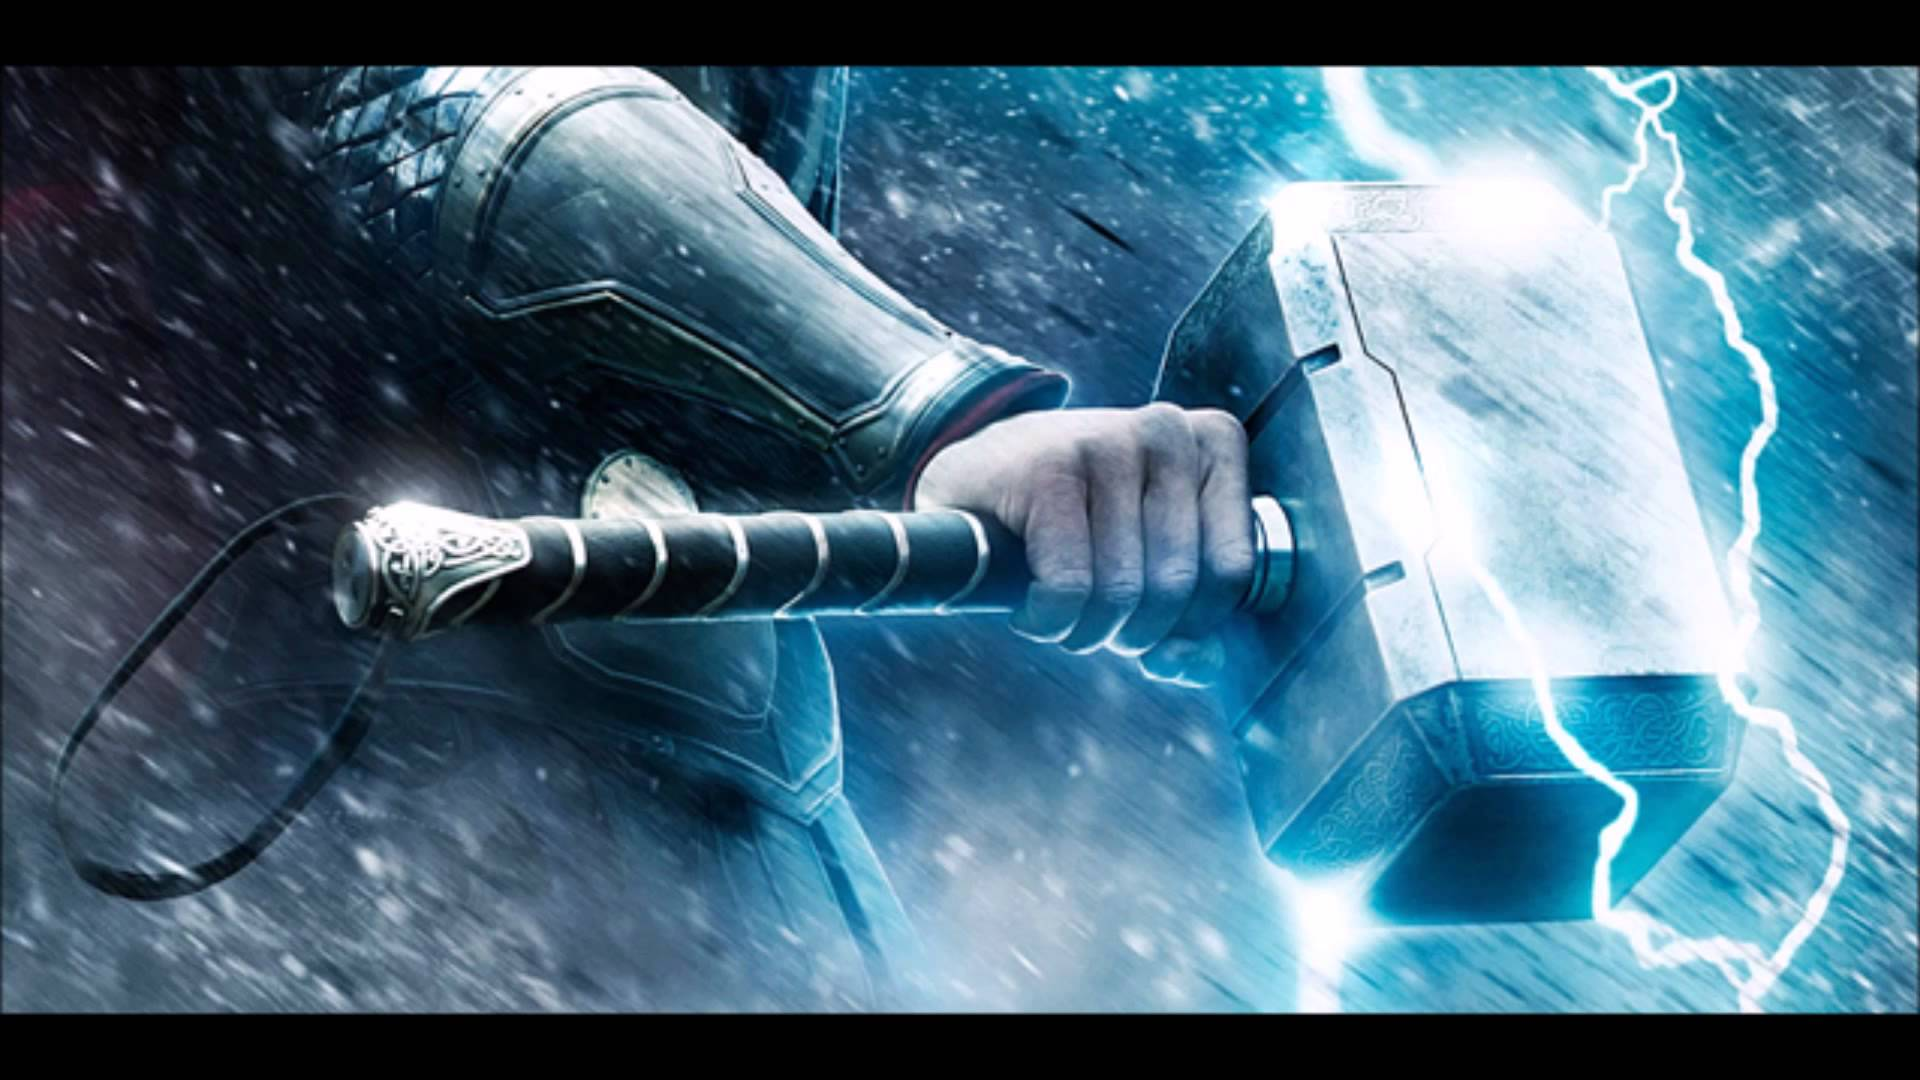 Thor Pictures Free Wallpaper: Thor Hammer HD Wallpapers